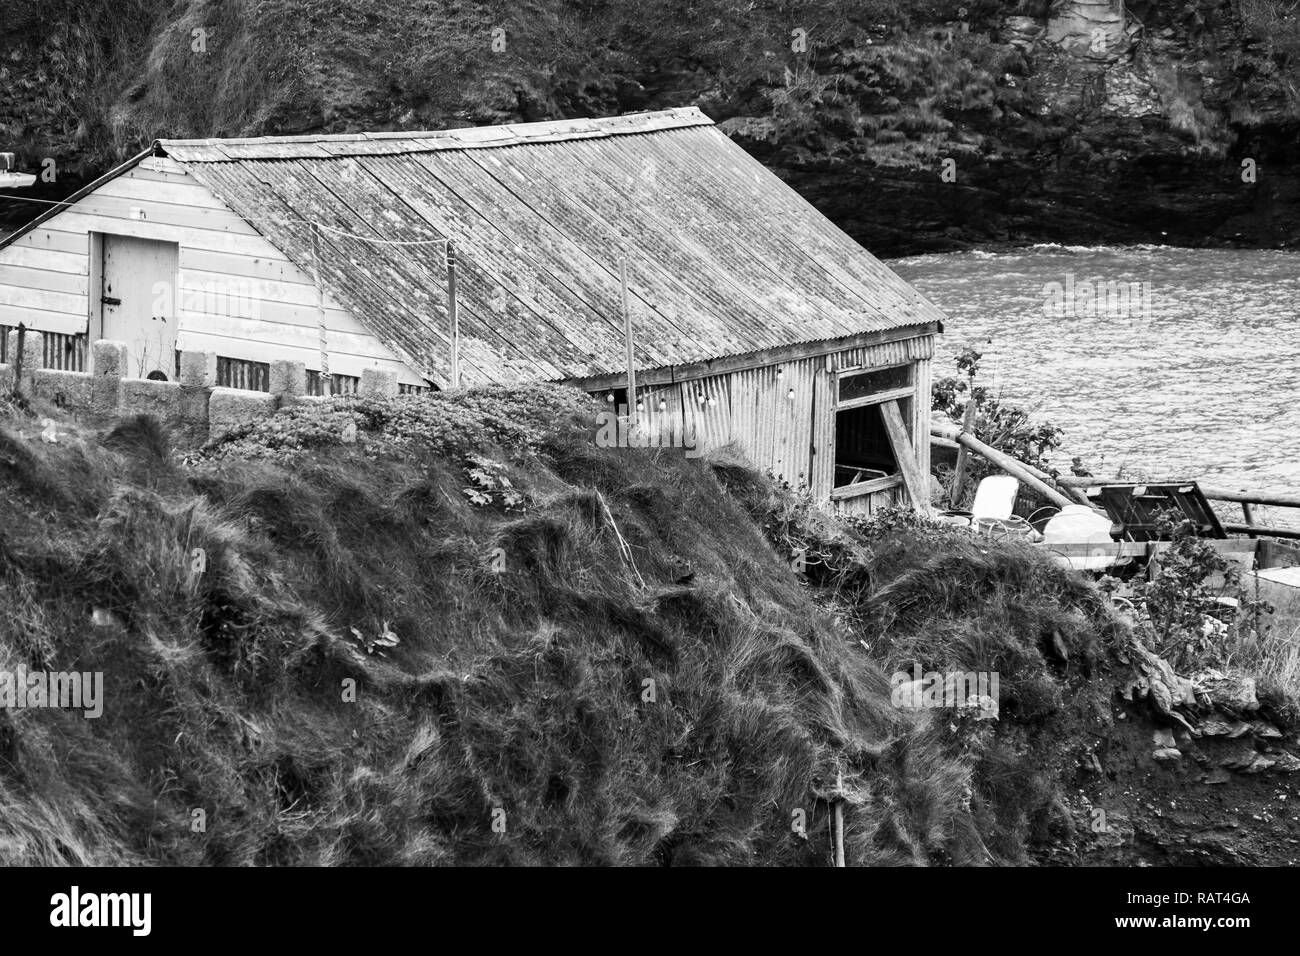 Old tumbledown and neglected shed overlooking the sea at Port Isaac in Cornwall, the home of the Doc Martin series. - Stock Image